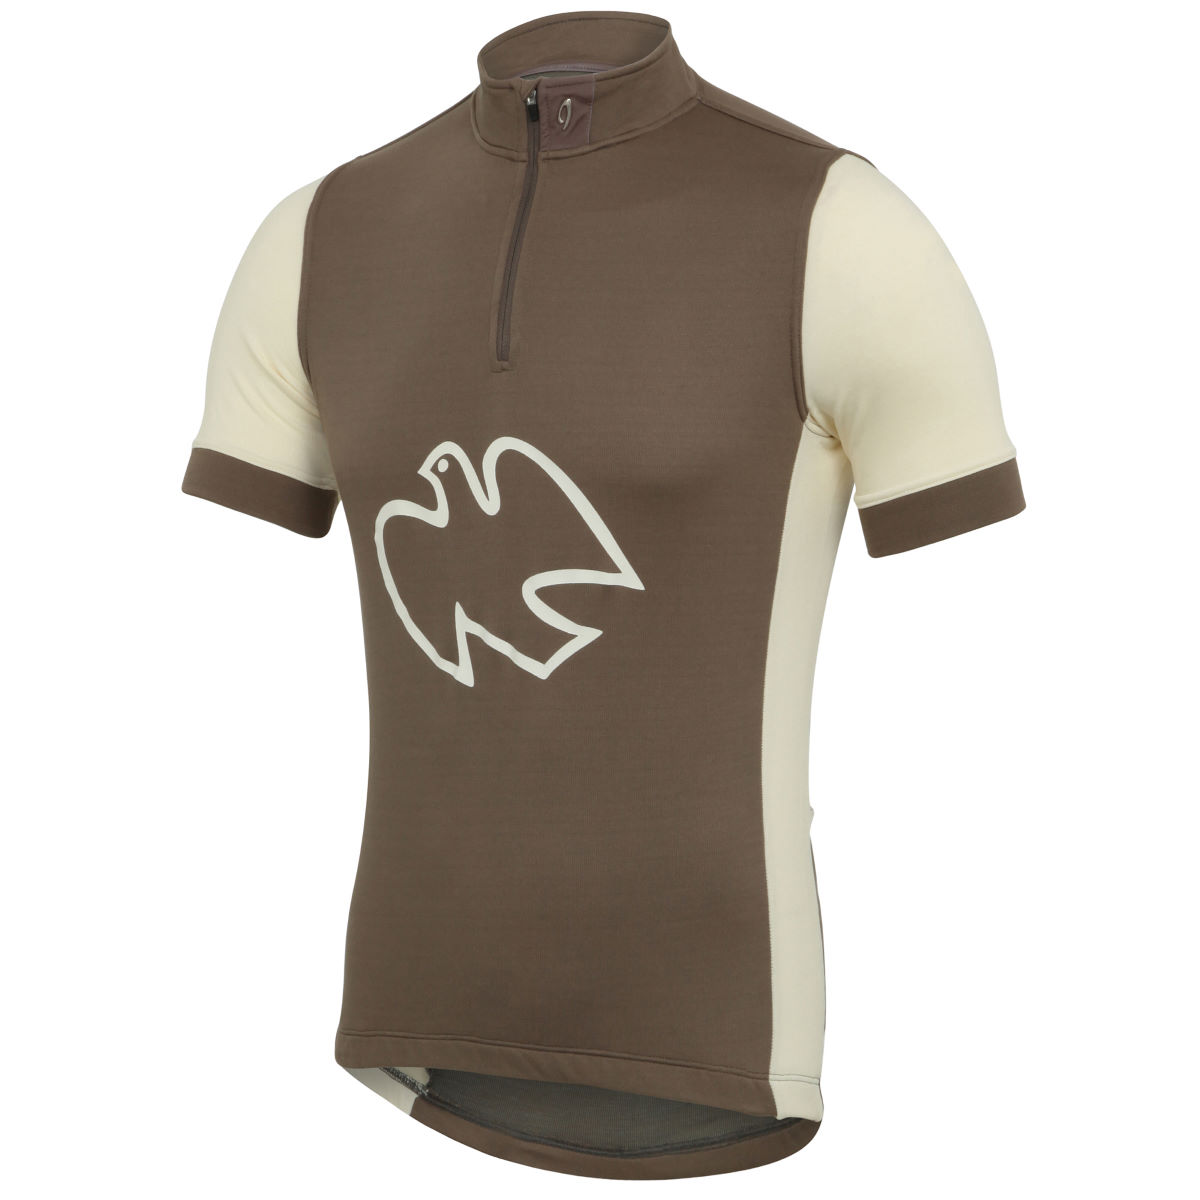 Maillot Isadore Peace (manches courtes) - XXL Tarmac Grey Maillots